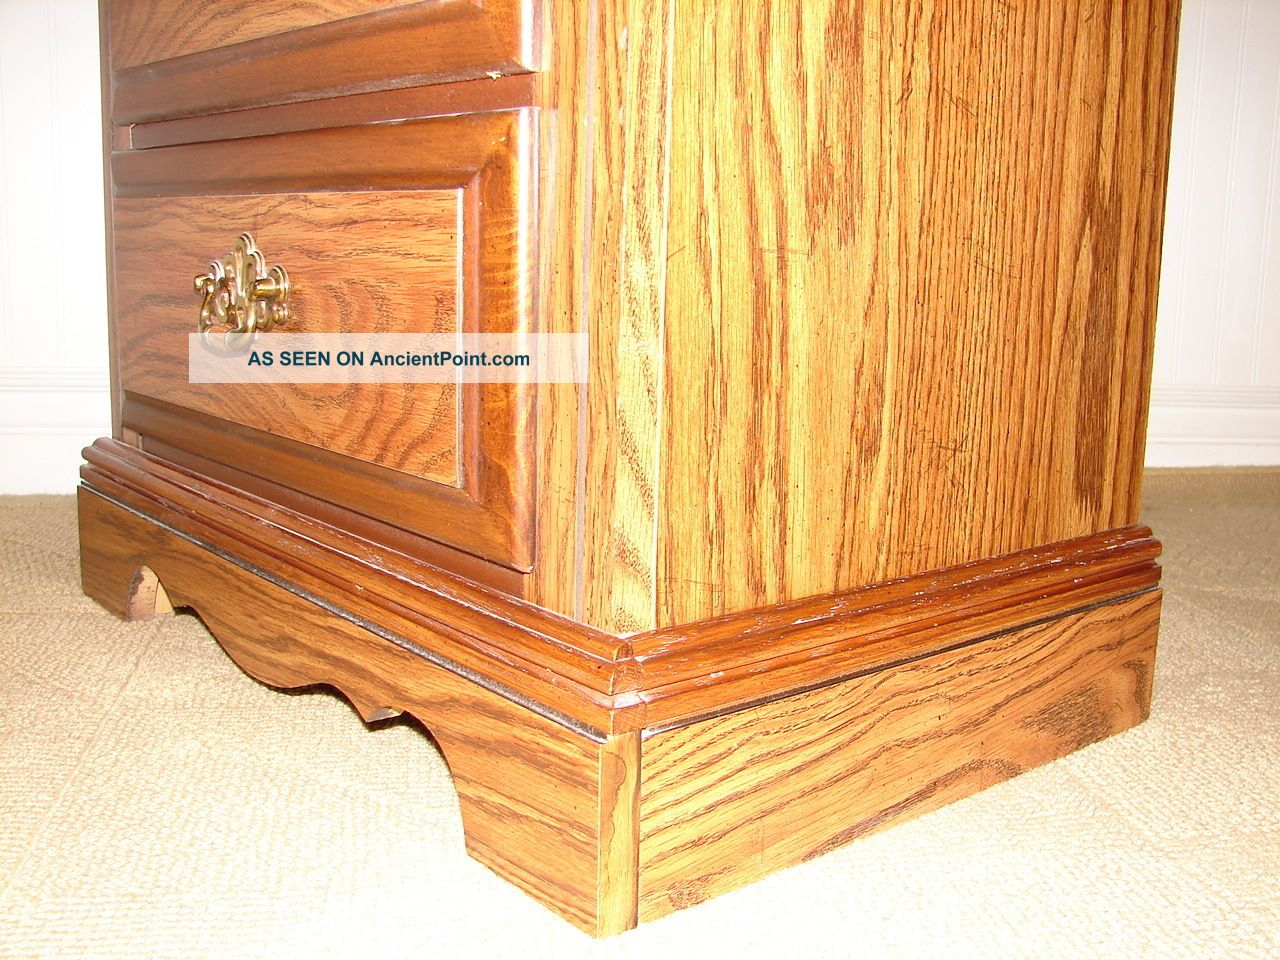 How To Clean Oak Chair How To Clean Oak Table How To Clean Old Oak Chair How To Clean Old